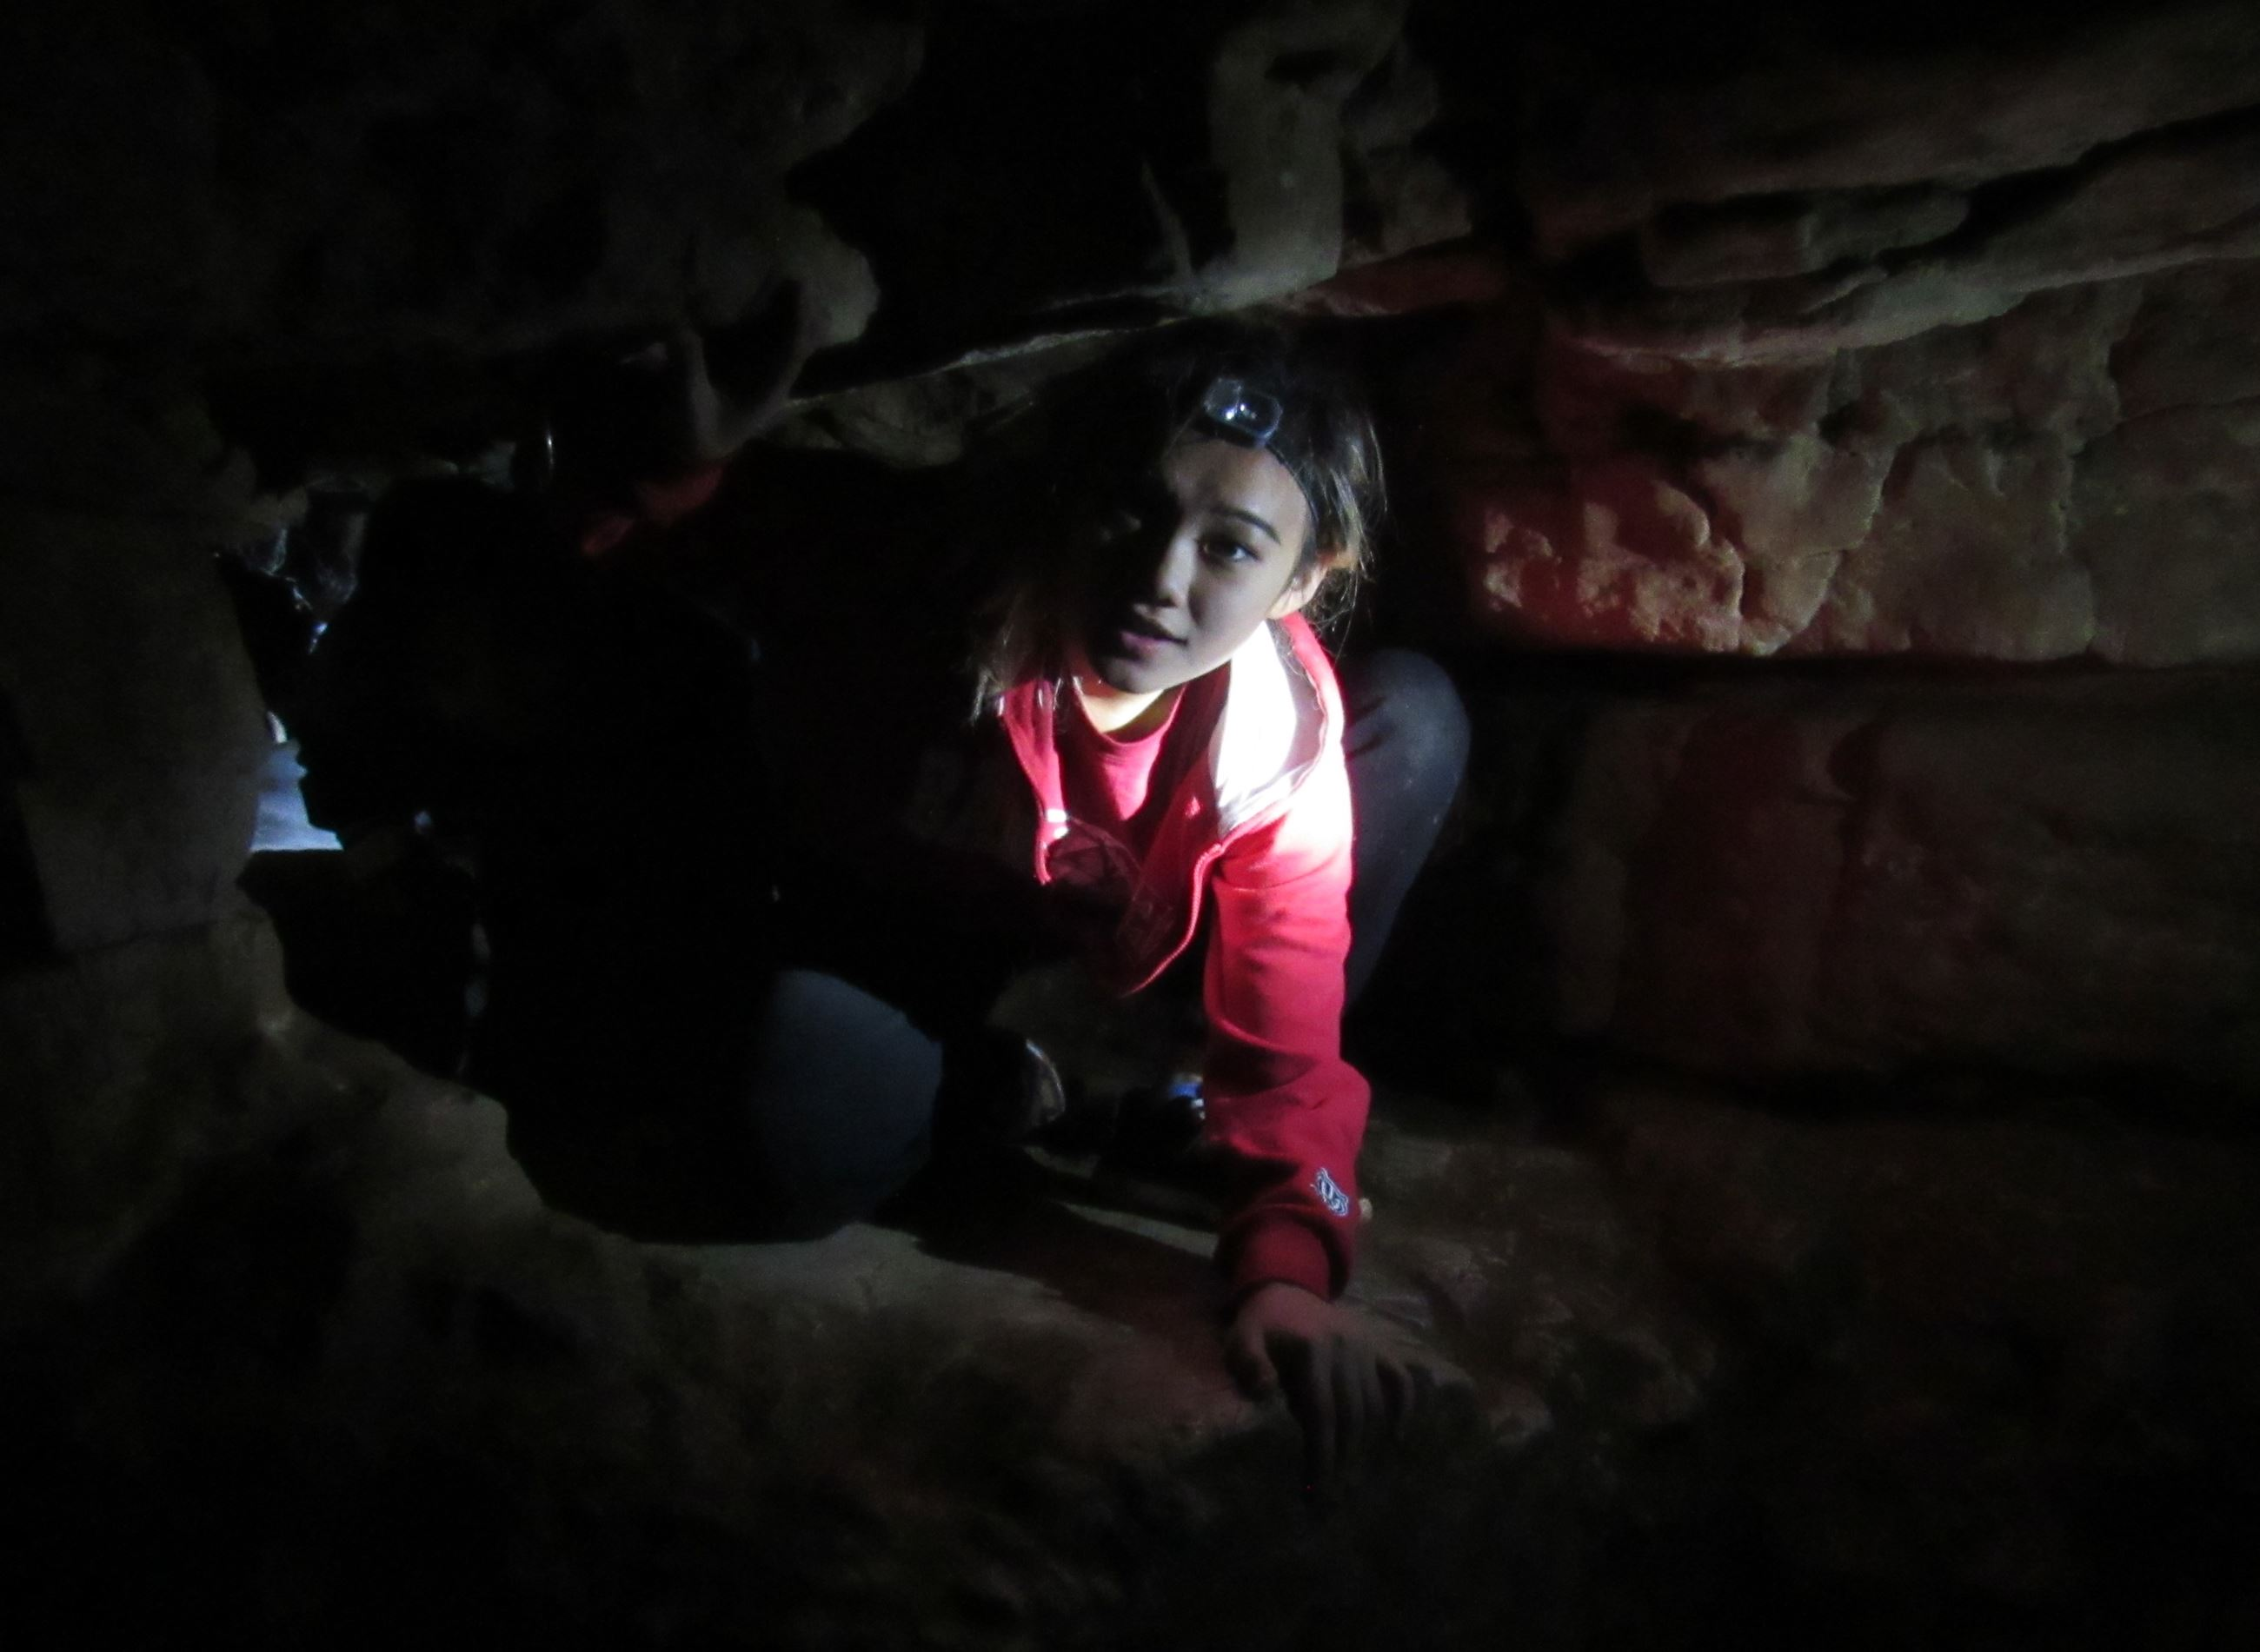 A teenage girl wearing a red sweatshirt and a headlamp crawling through a tunnel in a cave.